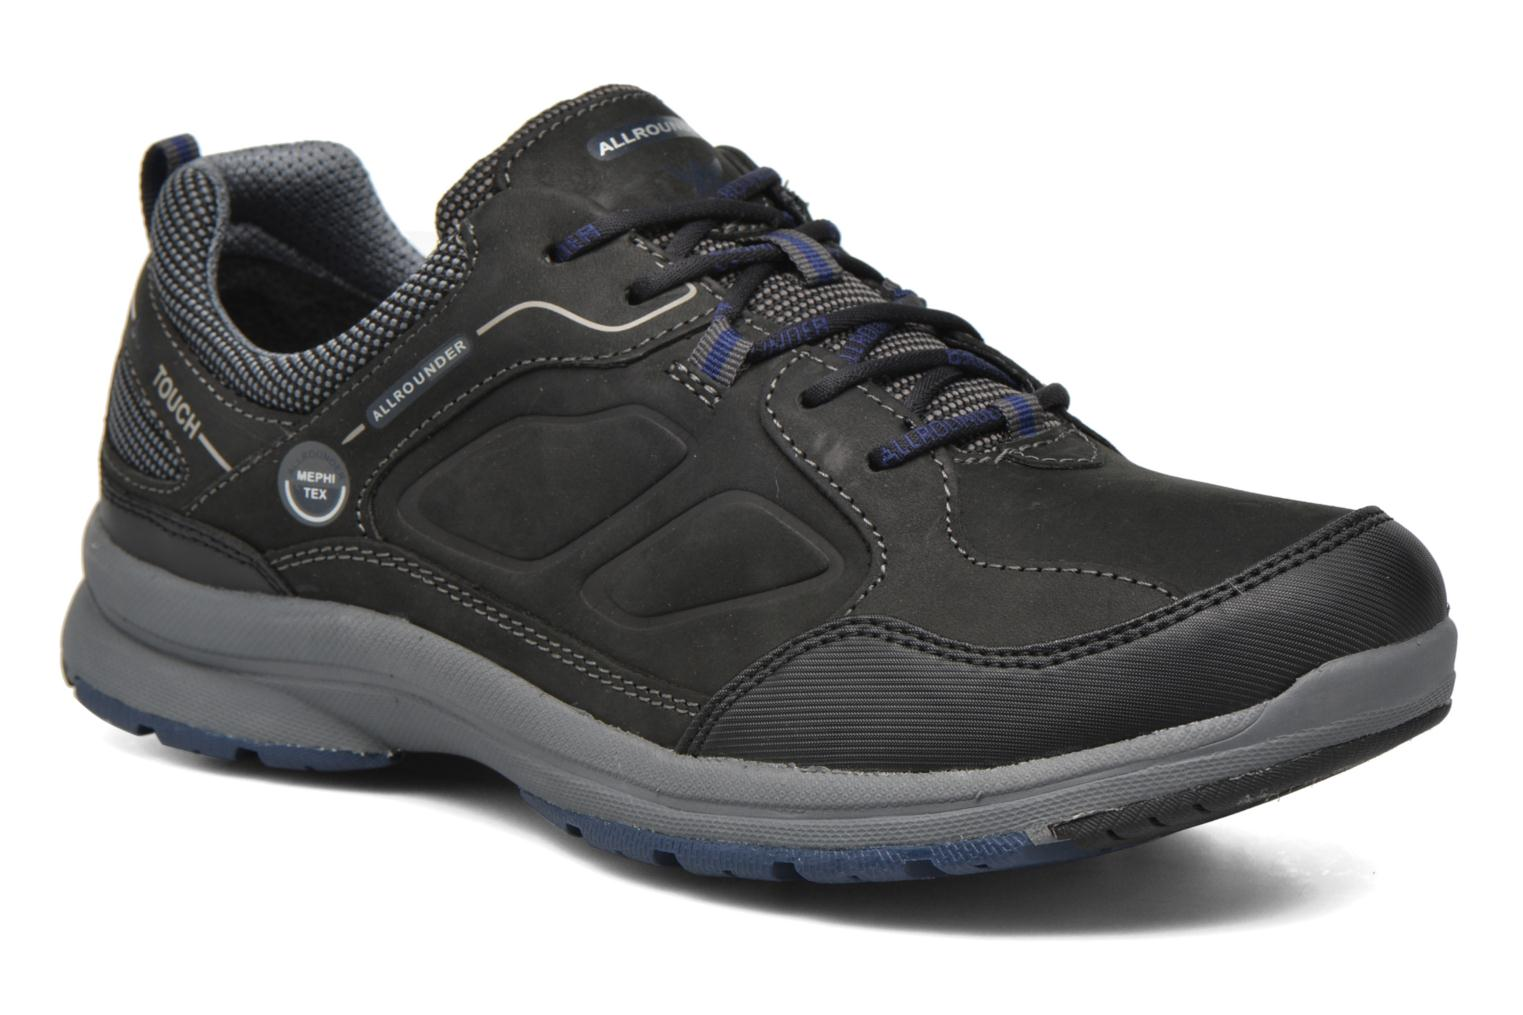 Sneakers Caletto Tex by Allrounder by Mephisto